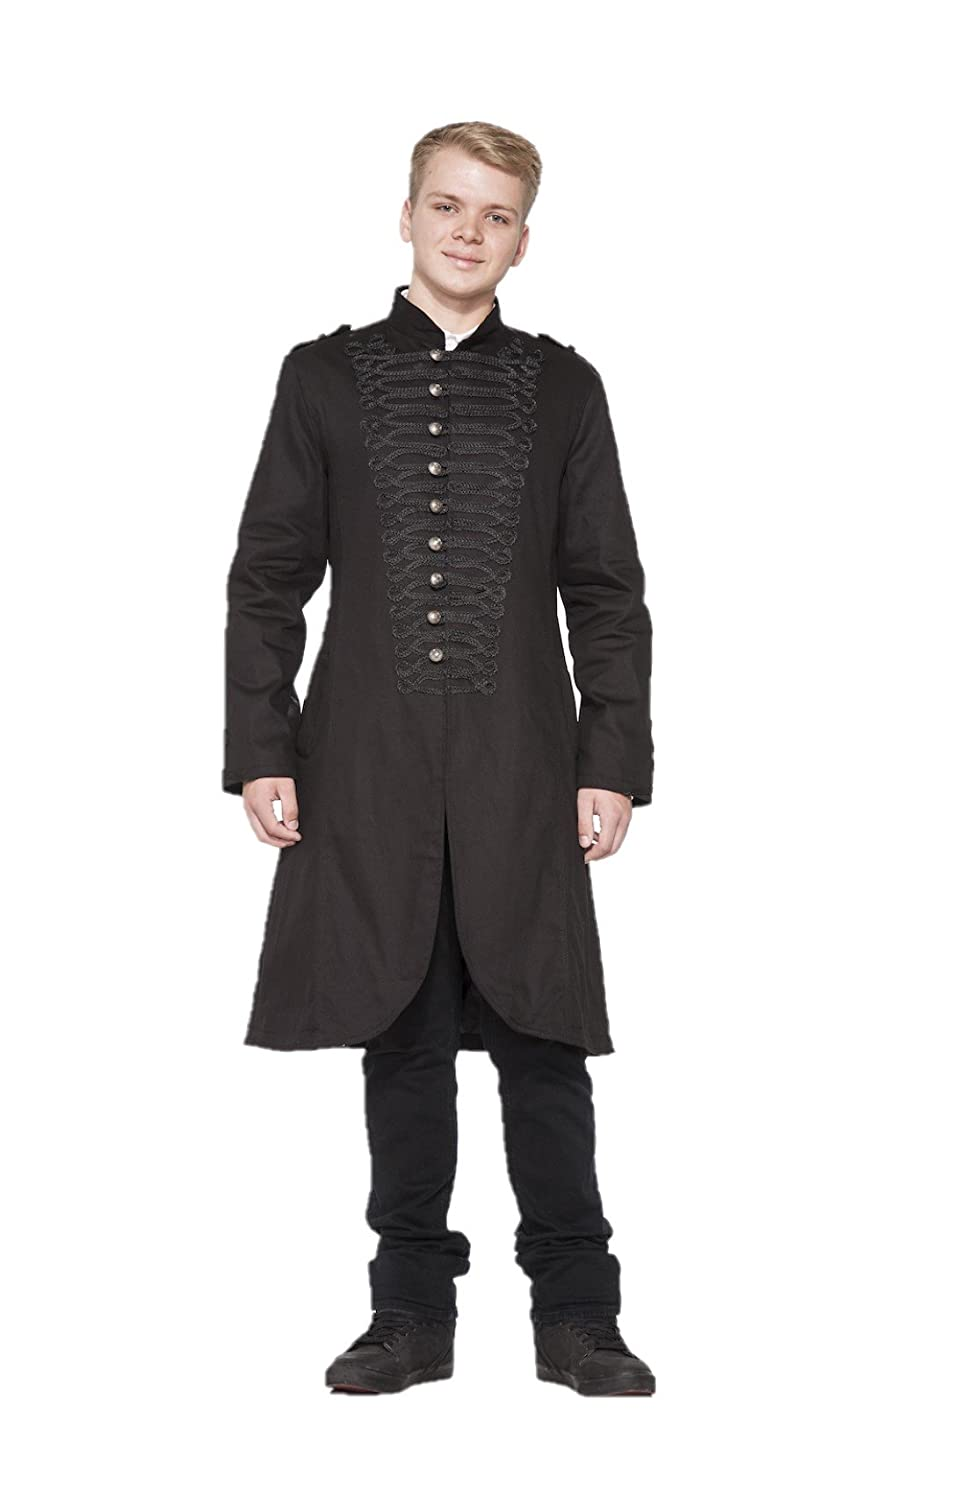 Men's Steampunk Clothing, Costumes, Fashion Hearts & Roses Military Coat (Shipped from The US and US Sizes) $98.88 AT vintagedancer.com